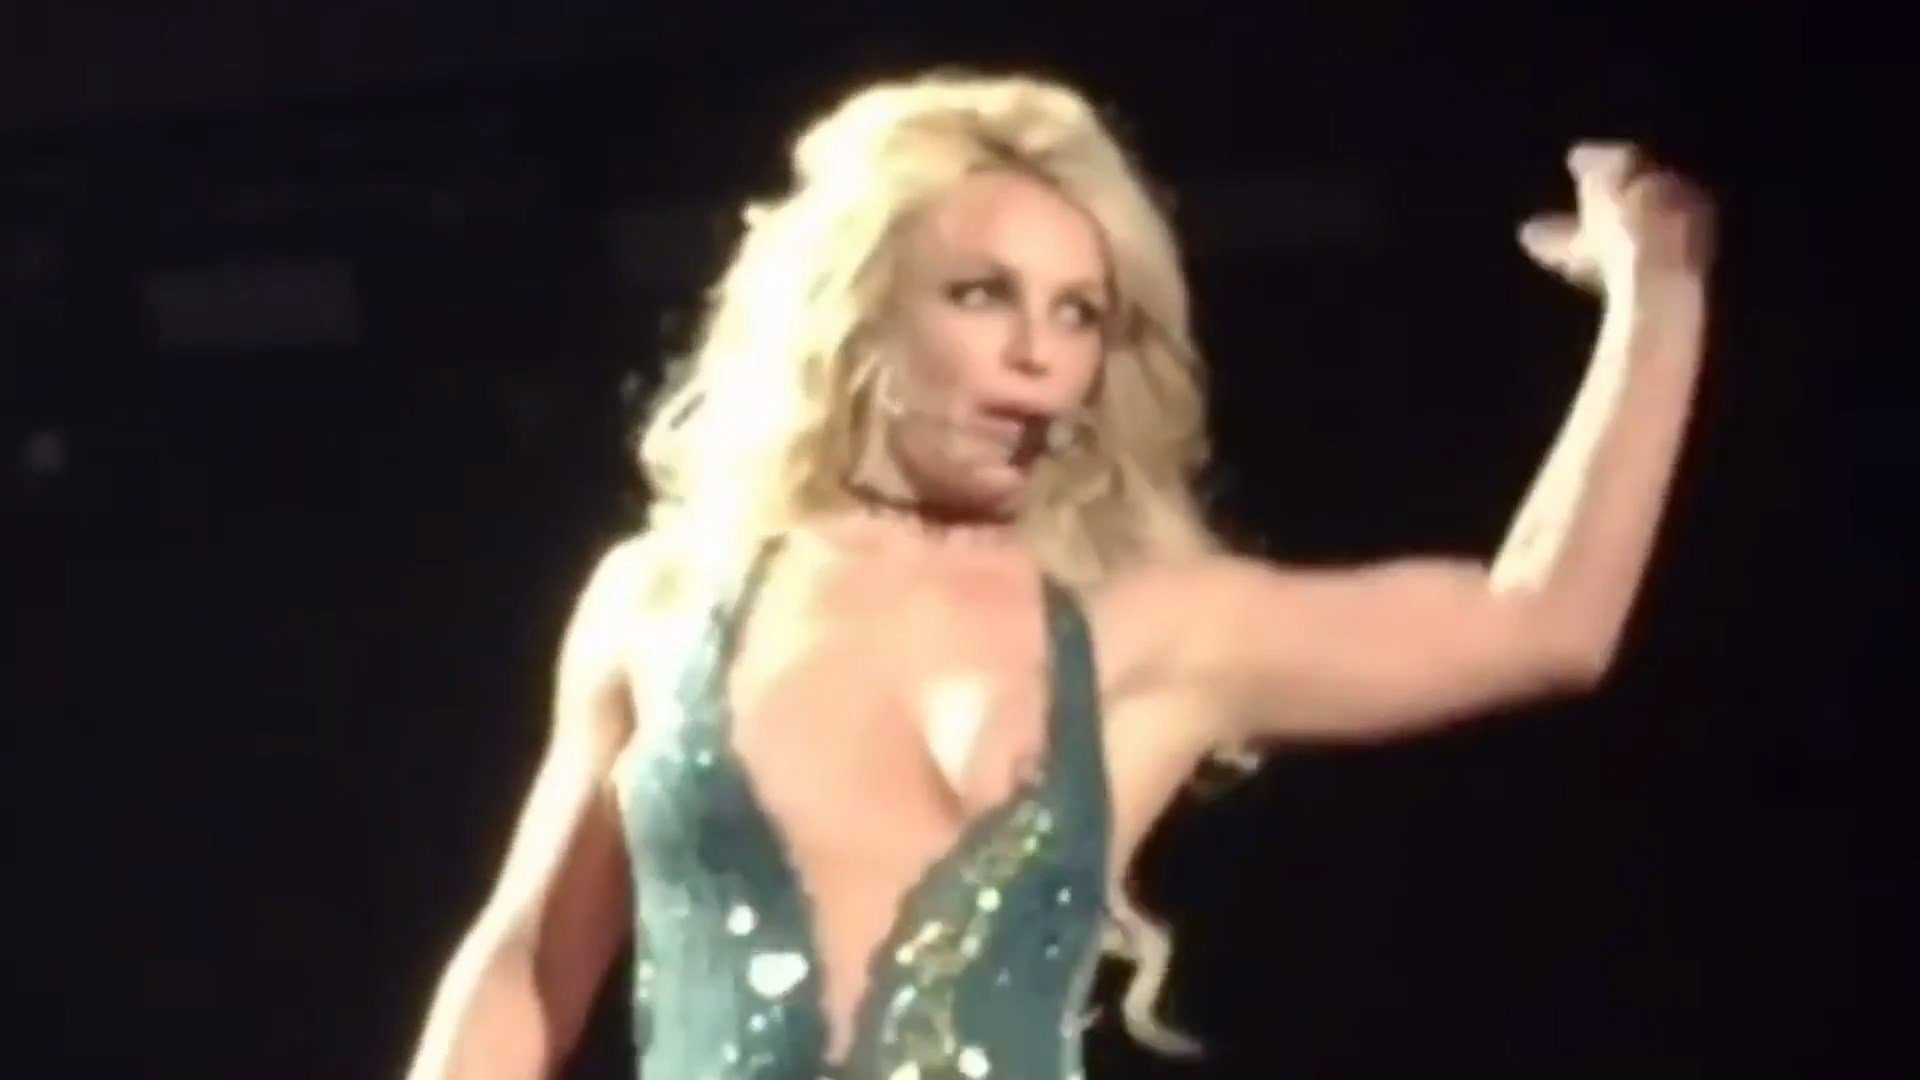 britney spears nip slip (3 photos + gif + video) | #thefappening